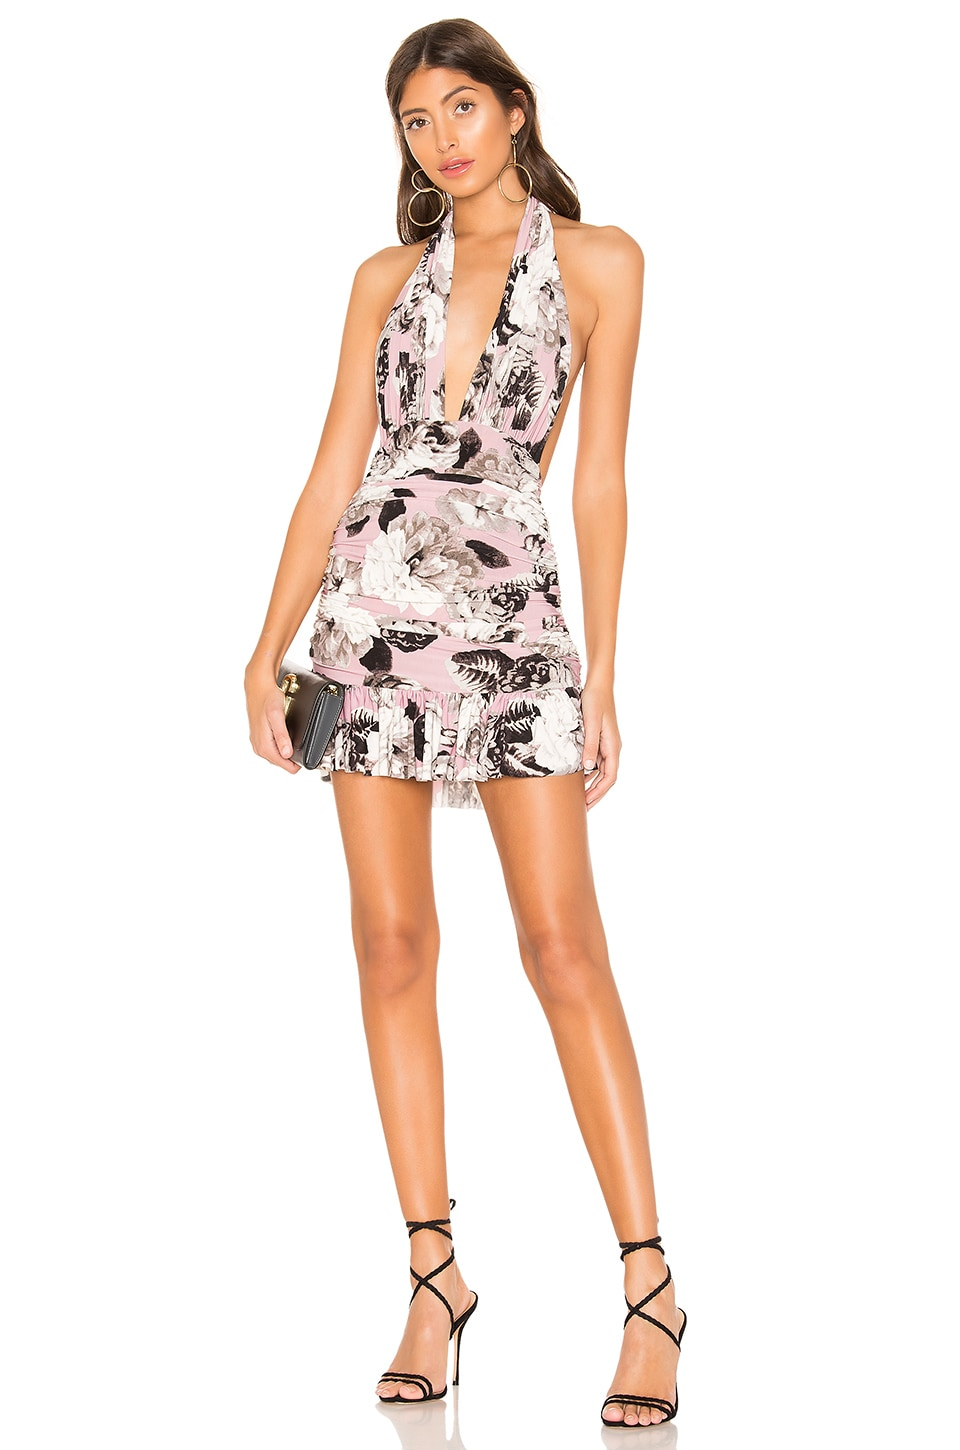 Norma Kamali Ruffle Halter Mio Mini Dress in Pink Peonies